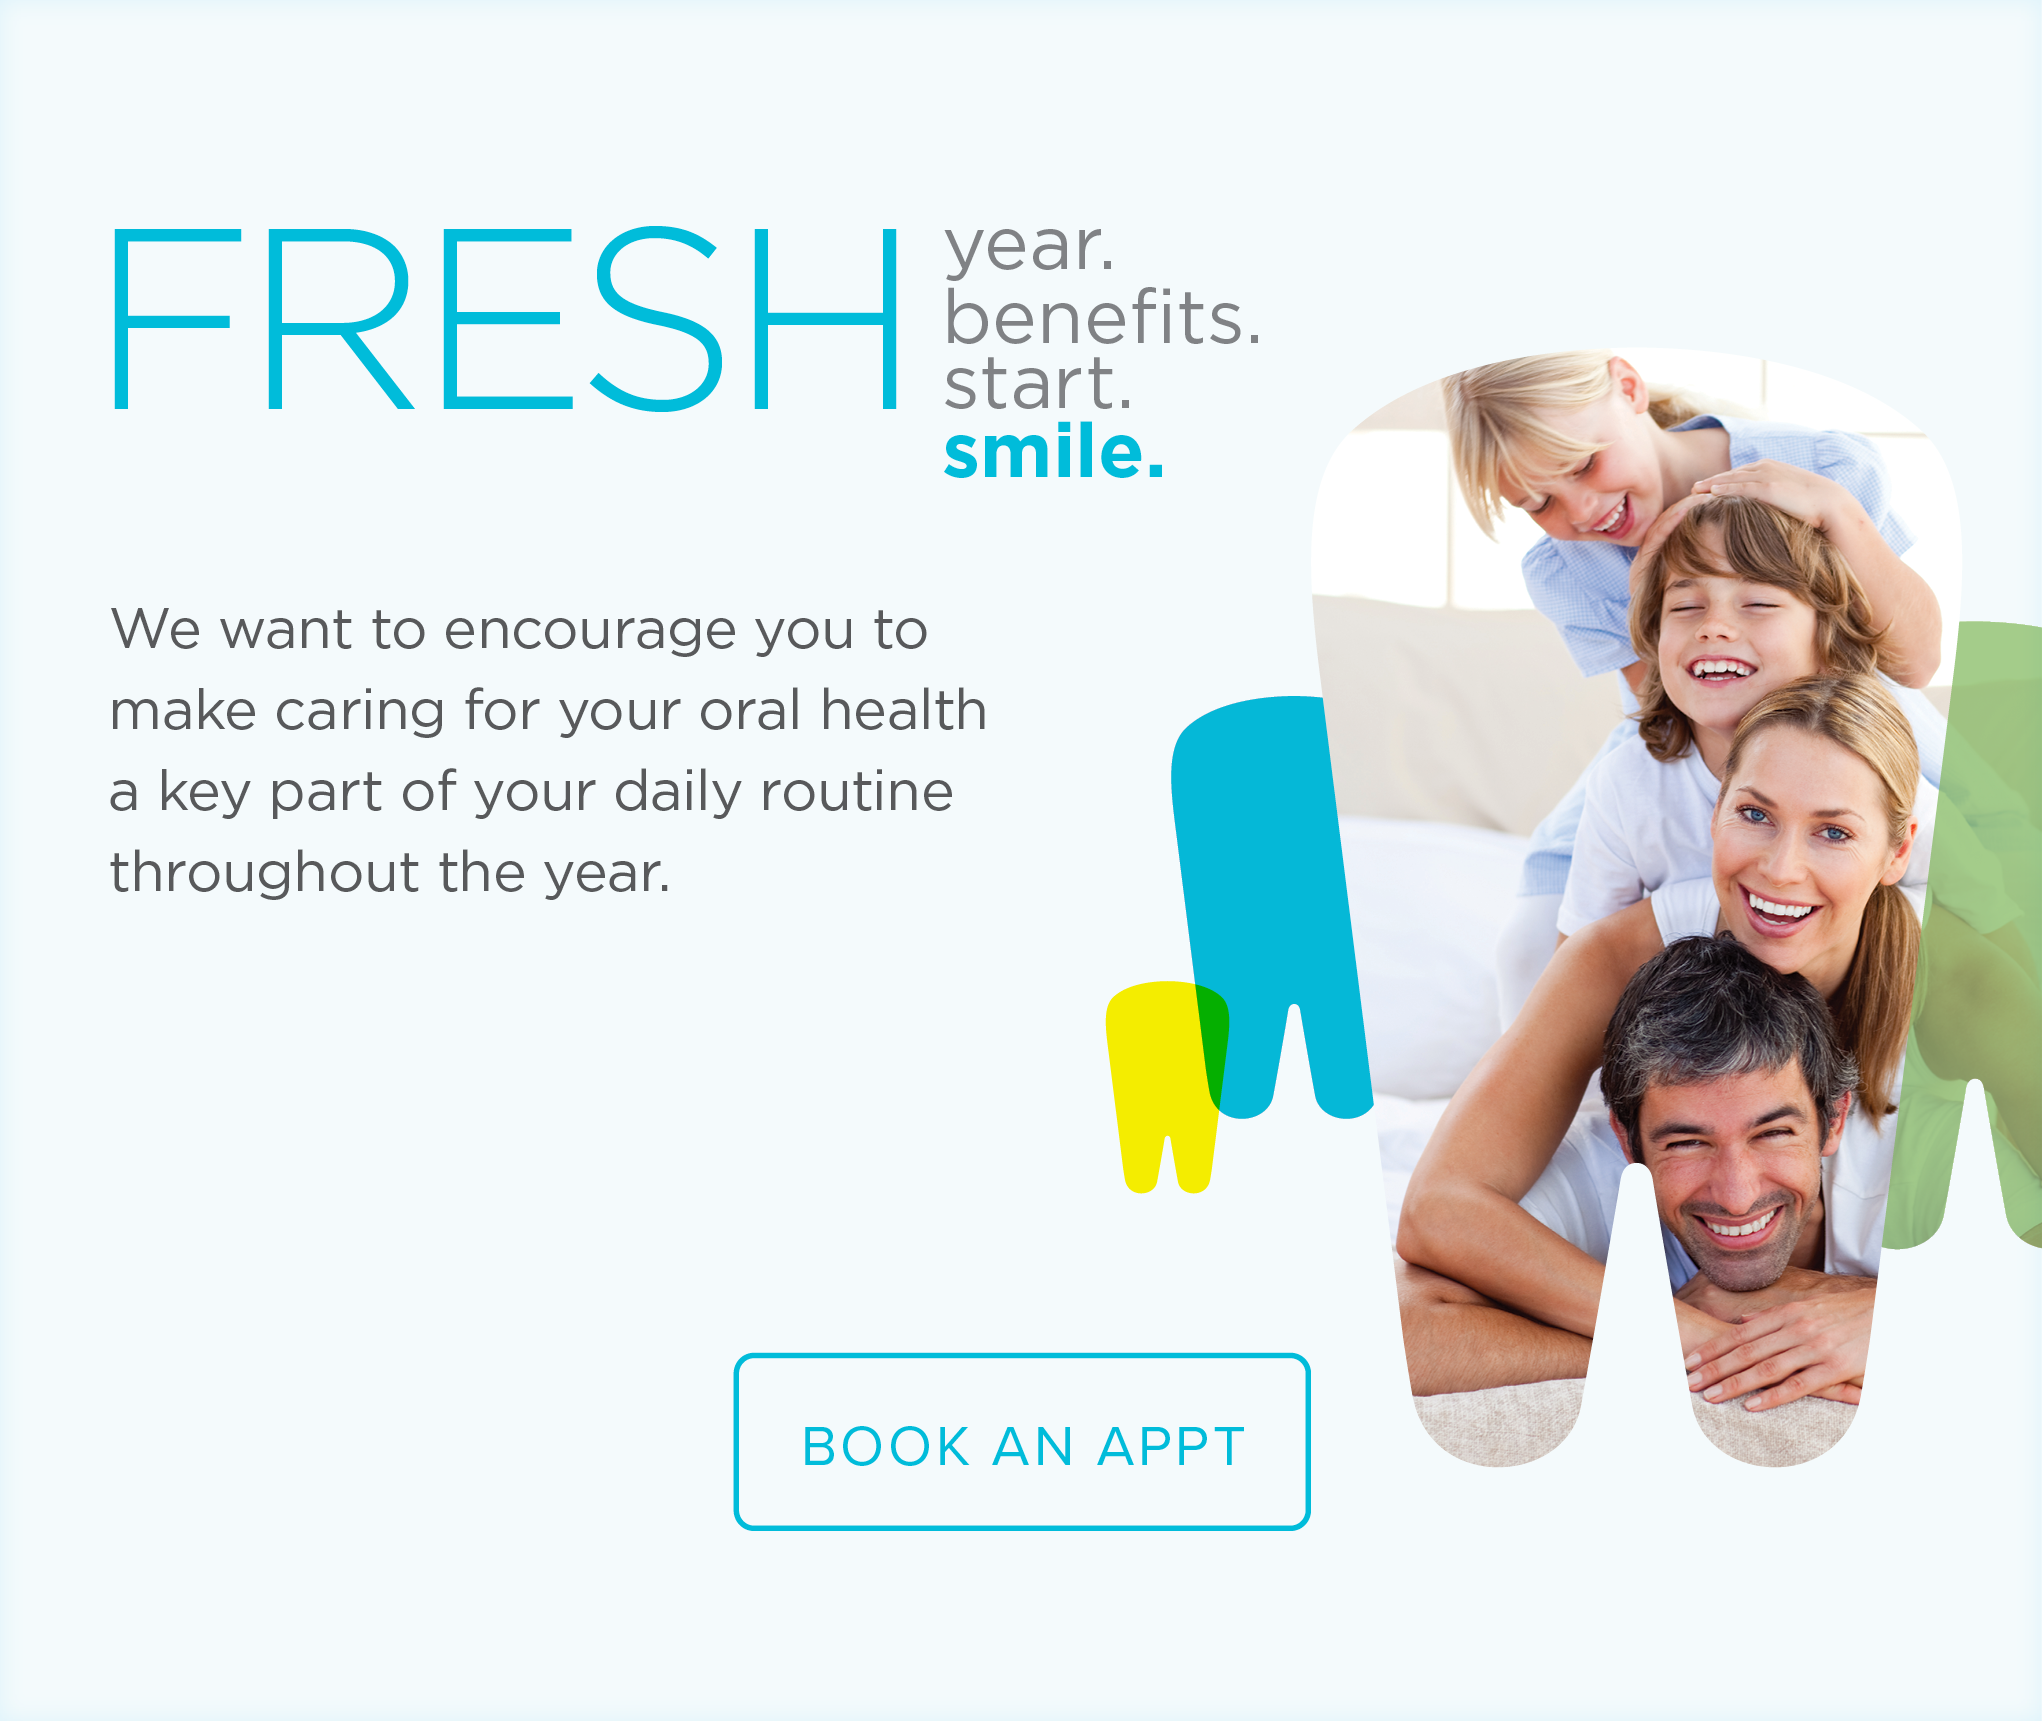 Orchard Dental Group and Orthodontics - Make the Most of Your Benefits